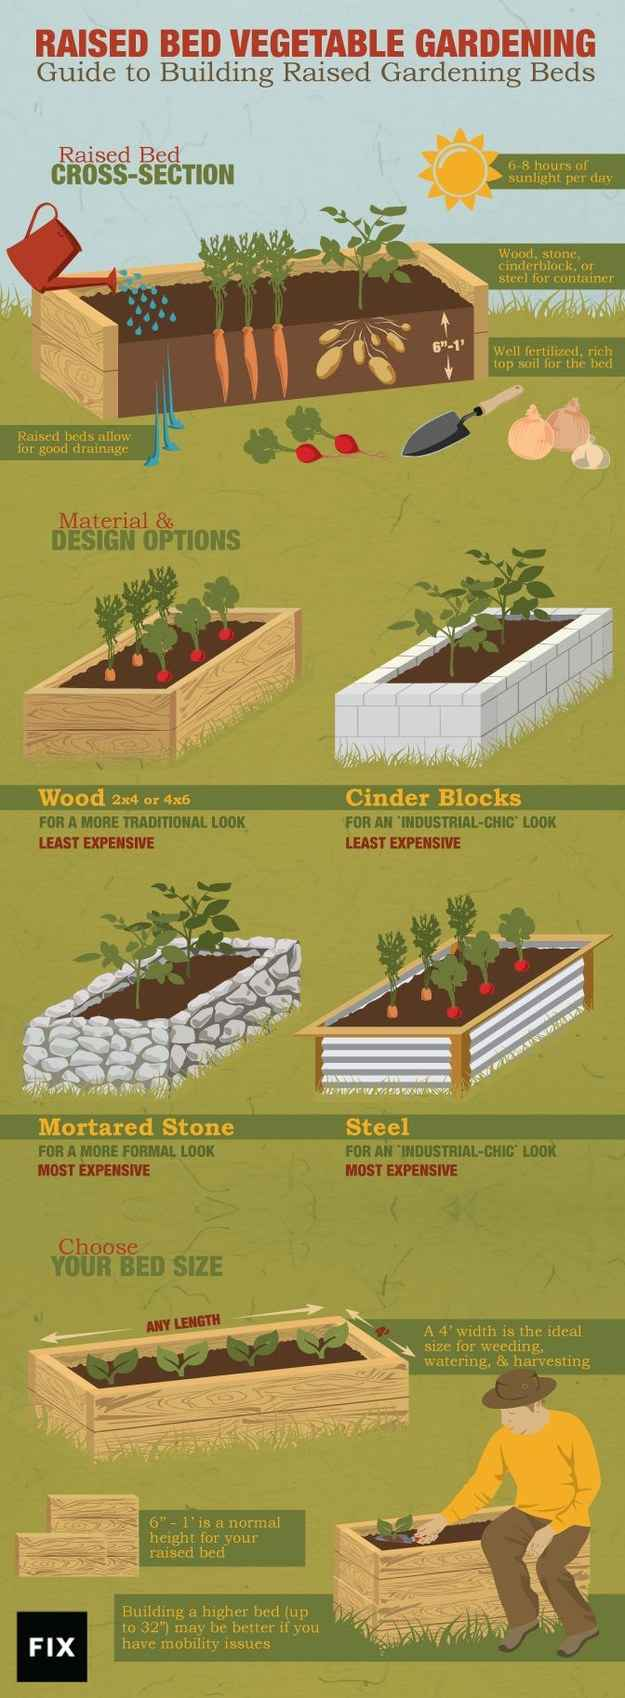 Raised gardening beds keep vegetables away from contaminated soil, can deter some pests, and are easier on backs and